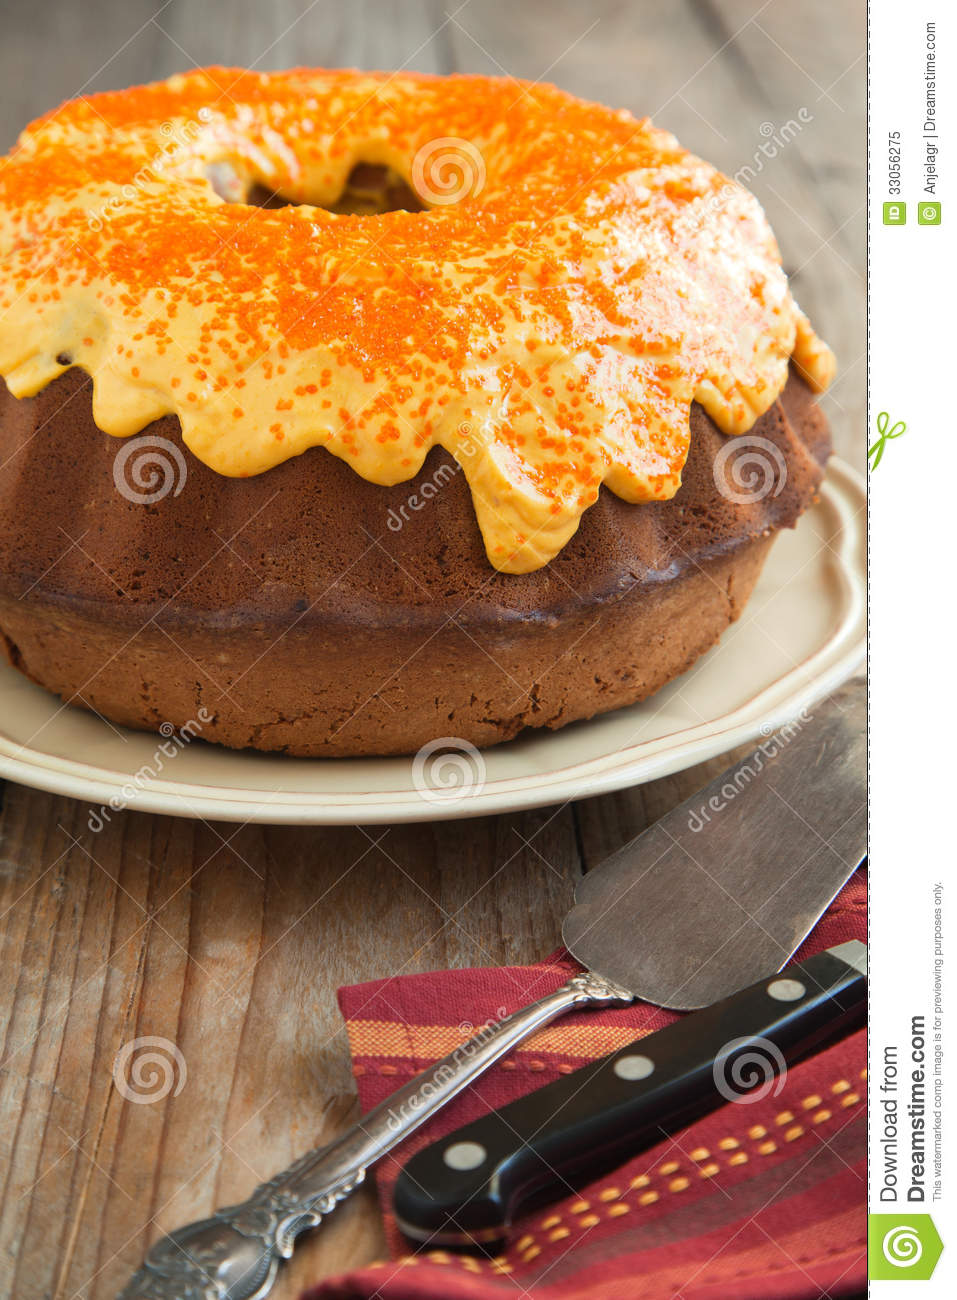 Pumpkin Spice Bundt Cake With Cream Cheese Frosting Royalty Free Stock ...